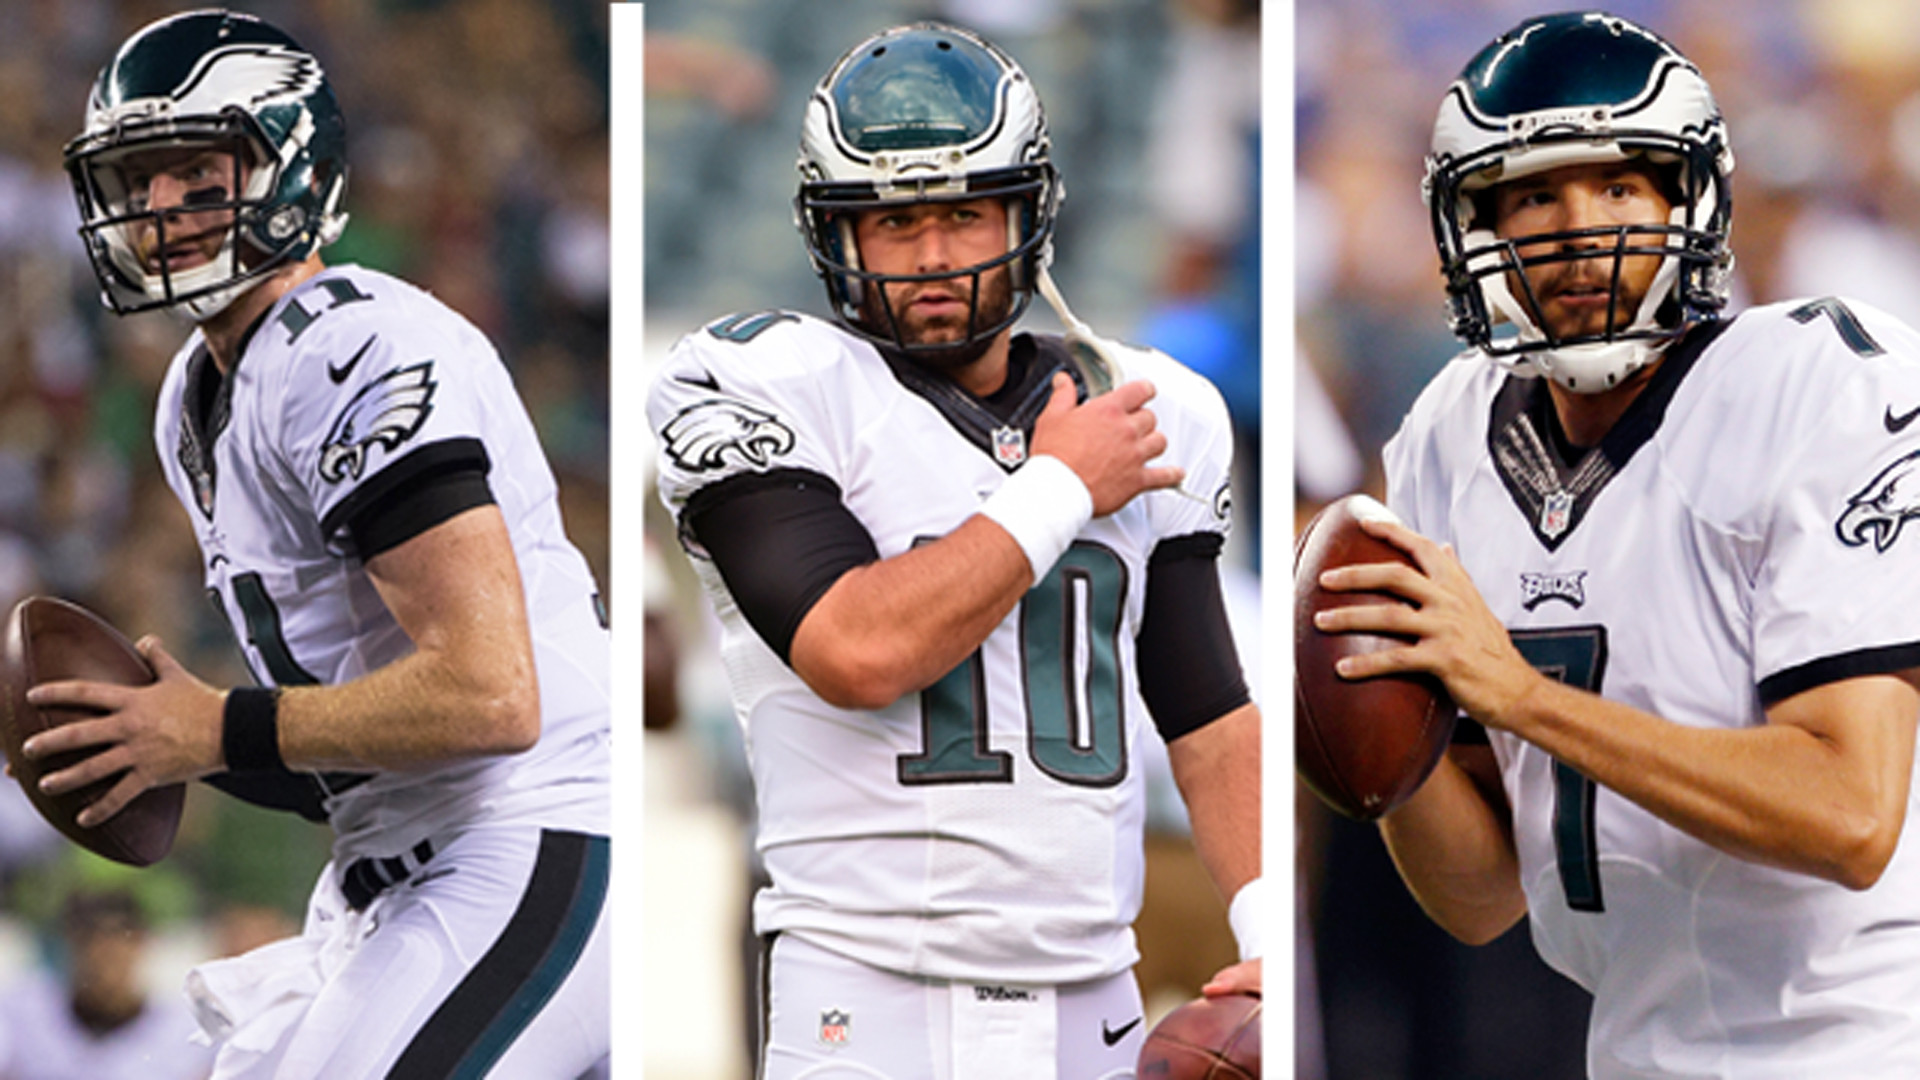 1920x1080 Eagles' only move for future was trading Sam Bradford now | NBC Sports  Philadelphia